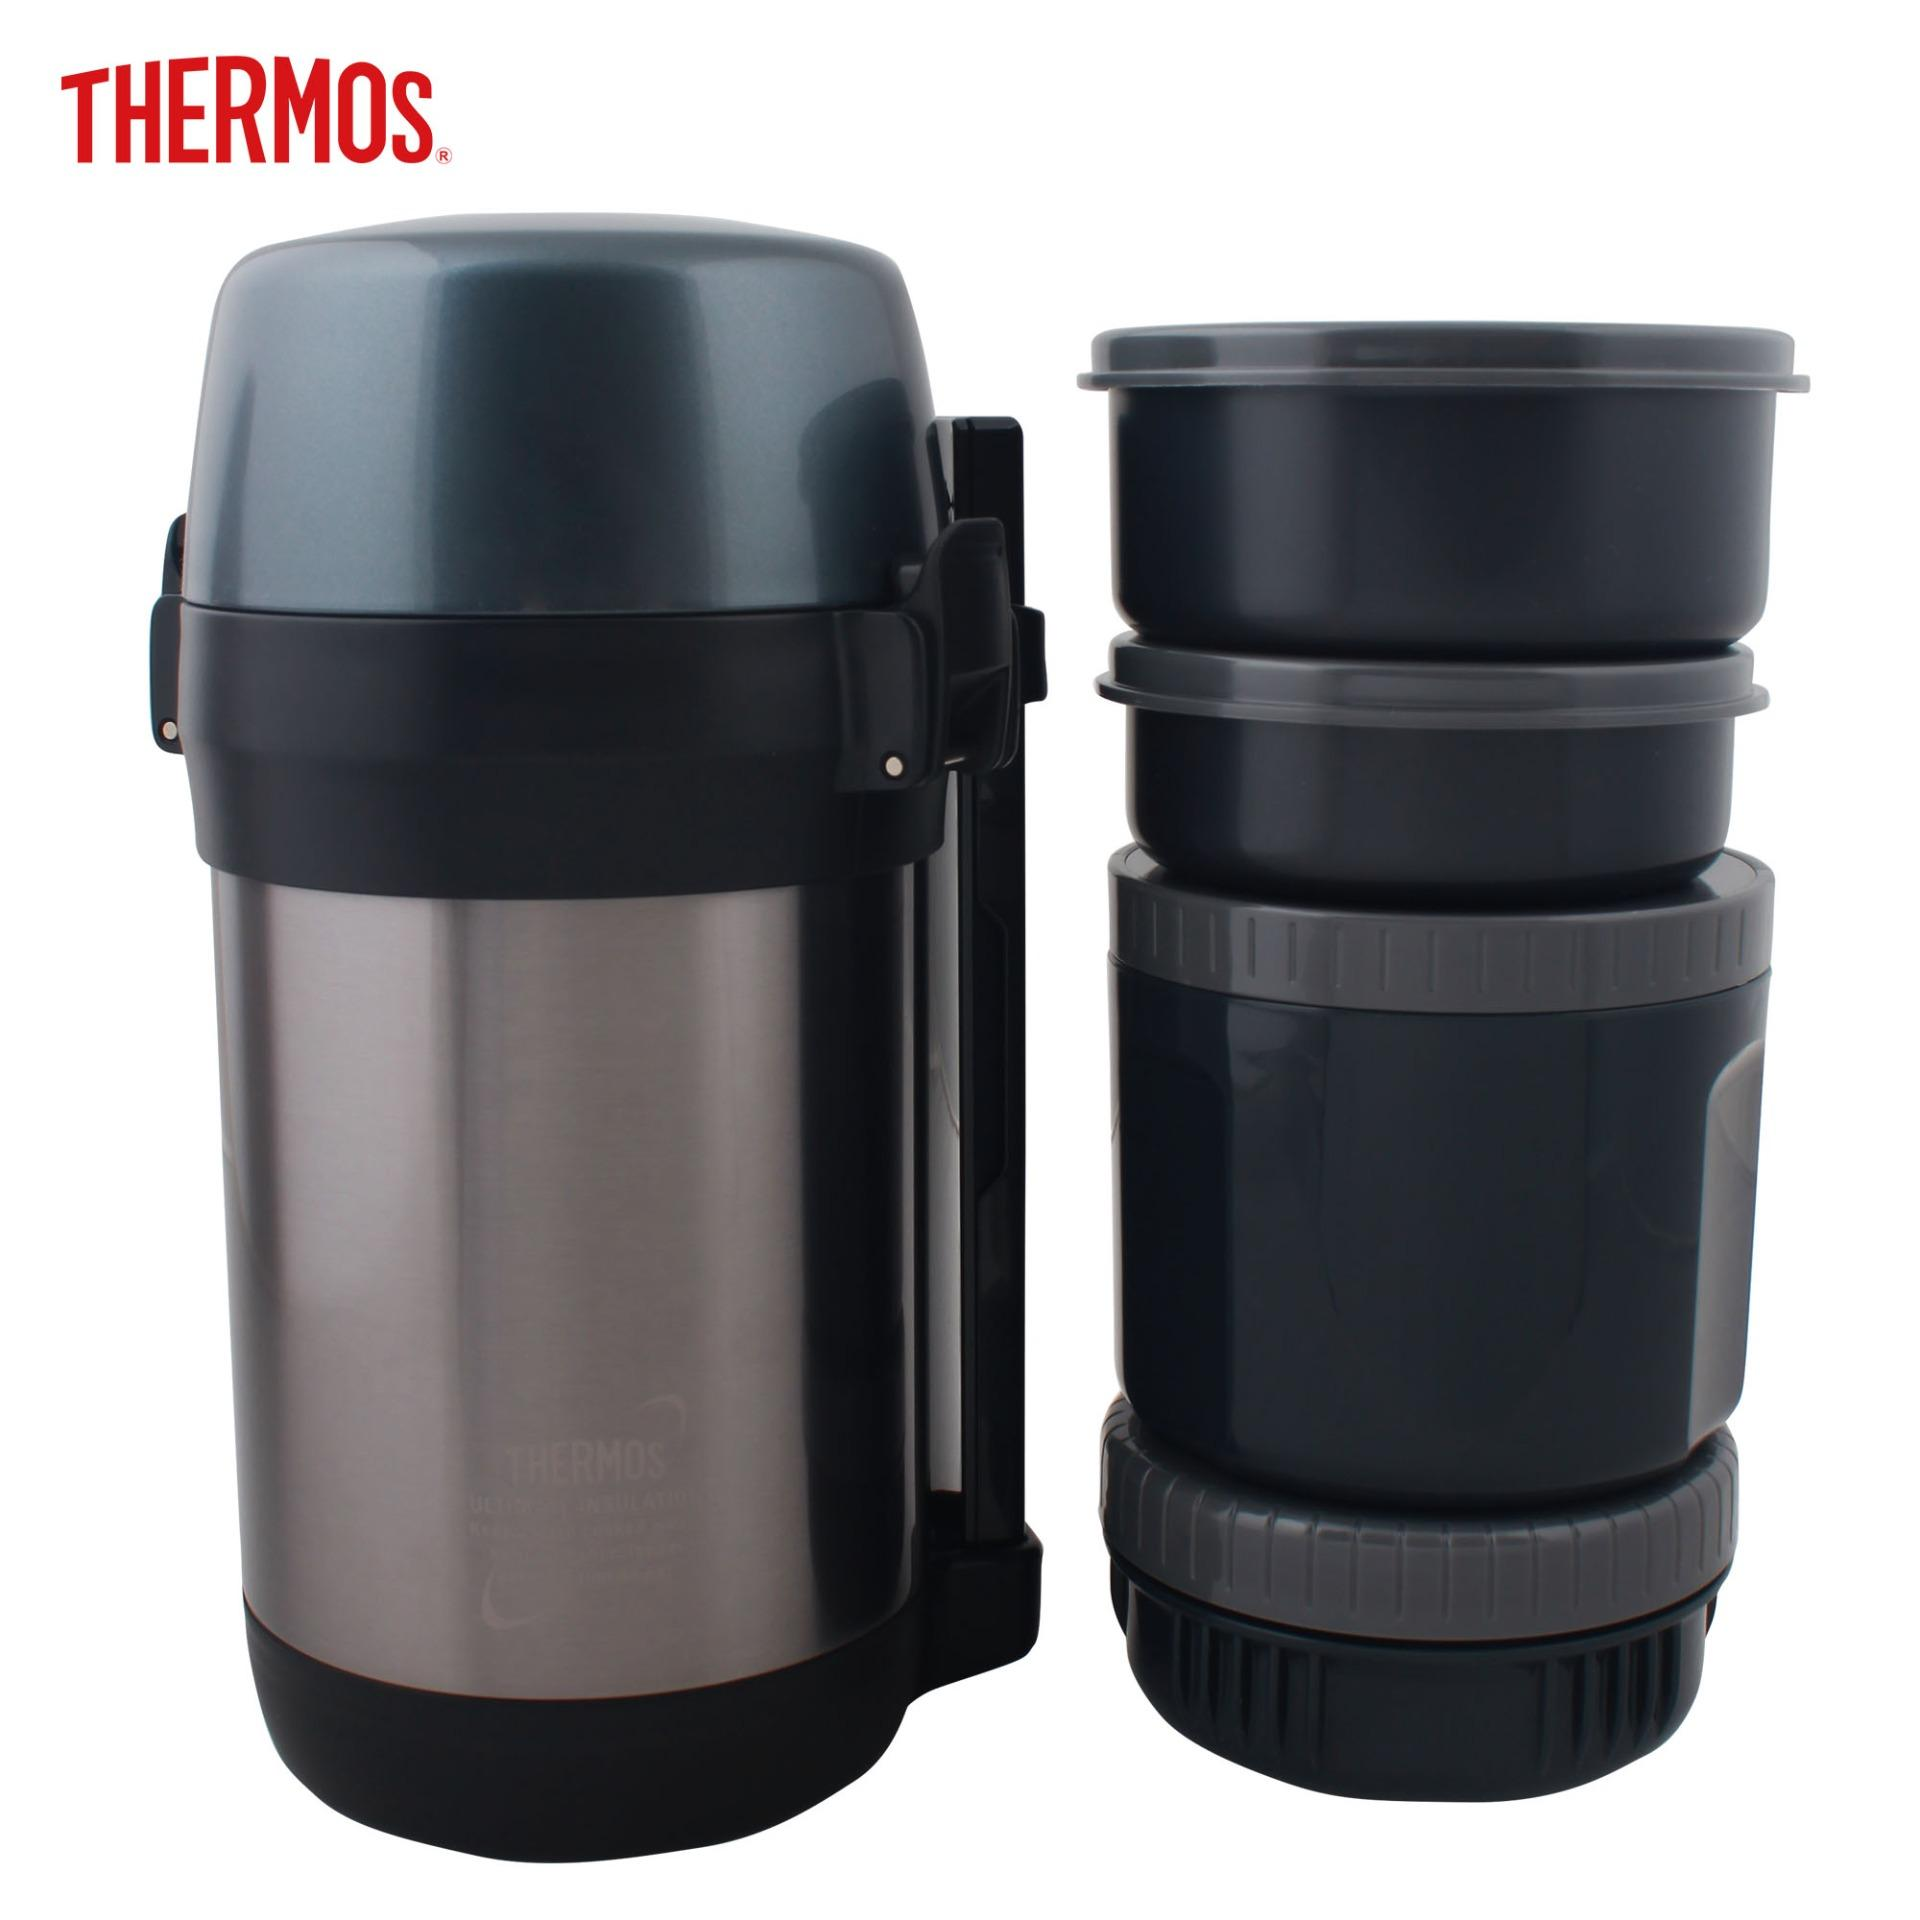 Thermos JLS-1601F Lunch Jar 1 6L with bag